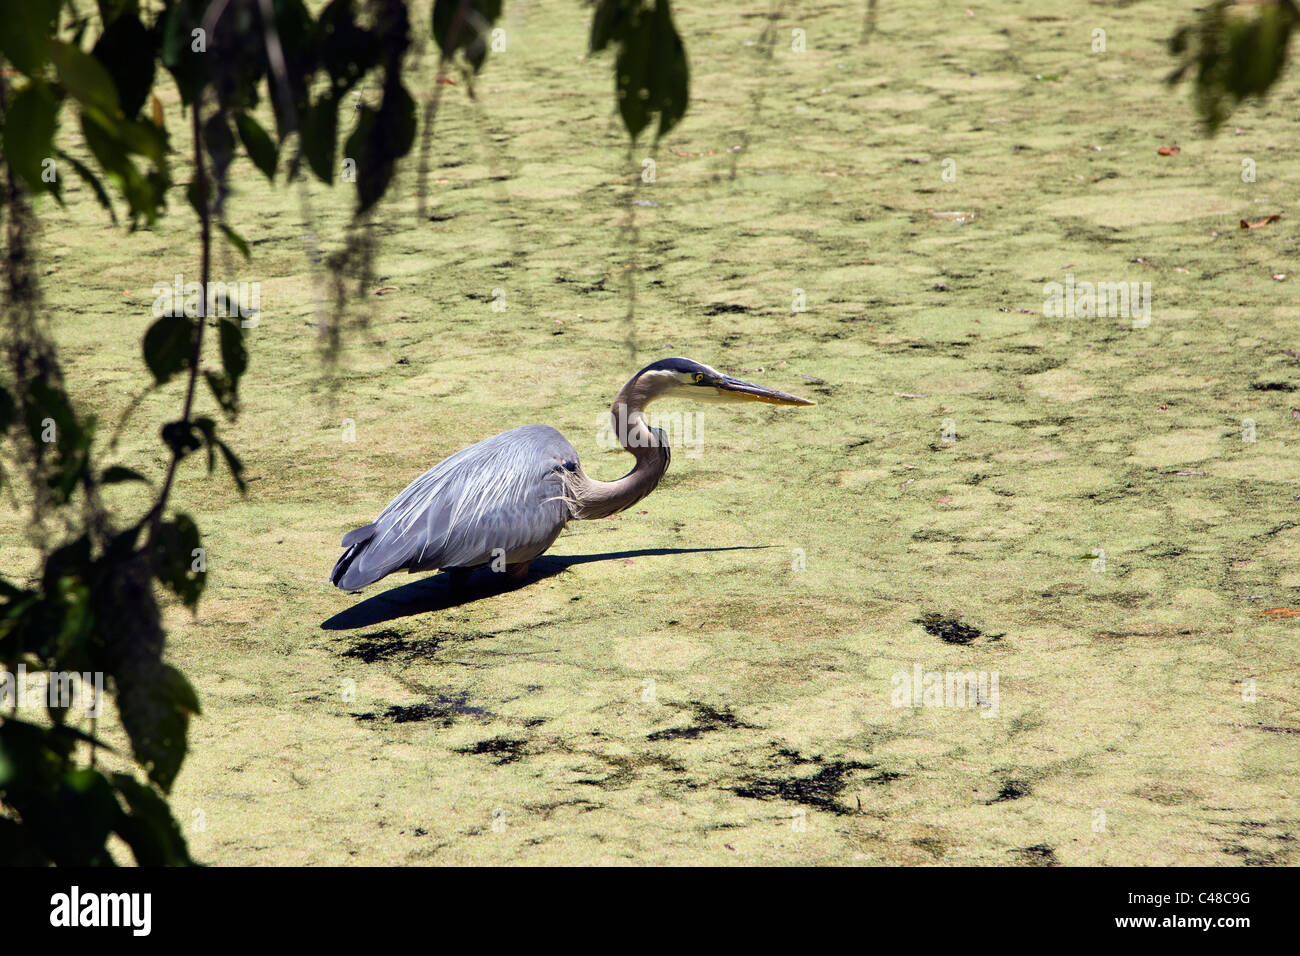 Great Blue Heron wading in a pond at Magnolia Plantation & Gardens, near Charleston, South Carolina, USA - Stock Image